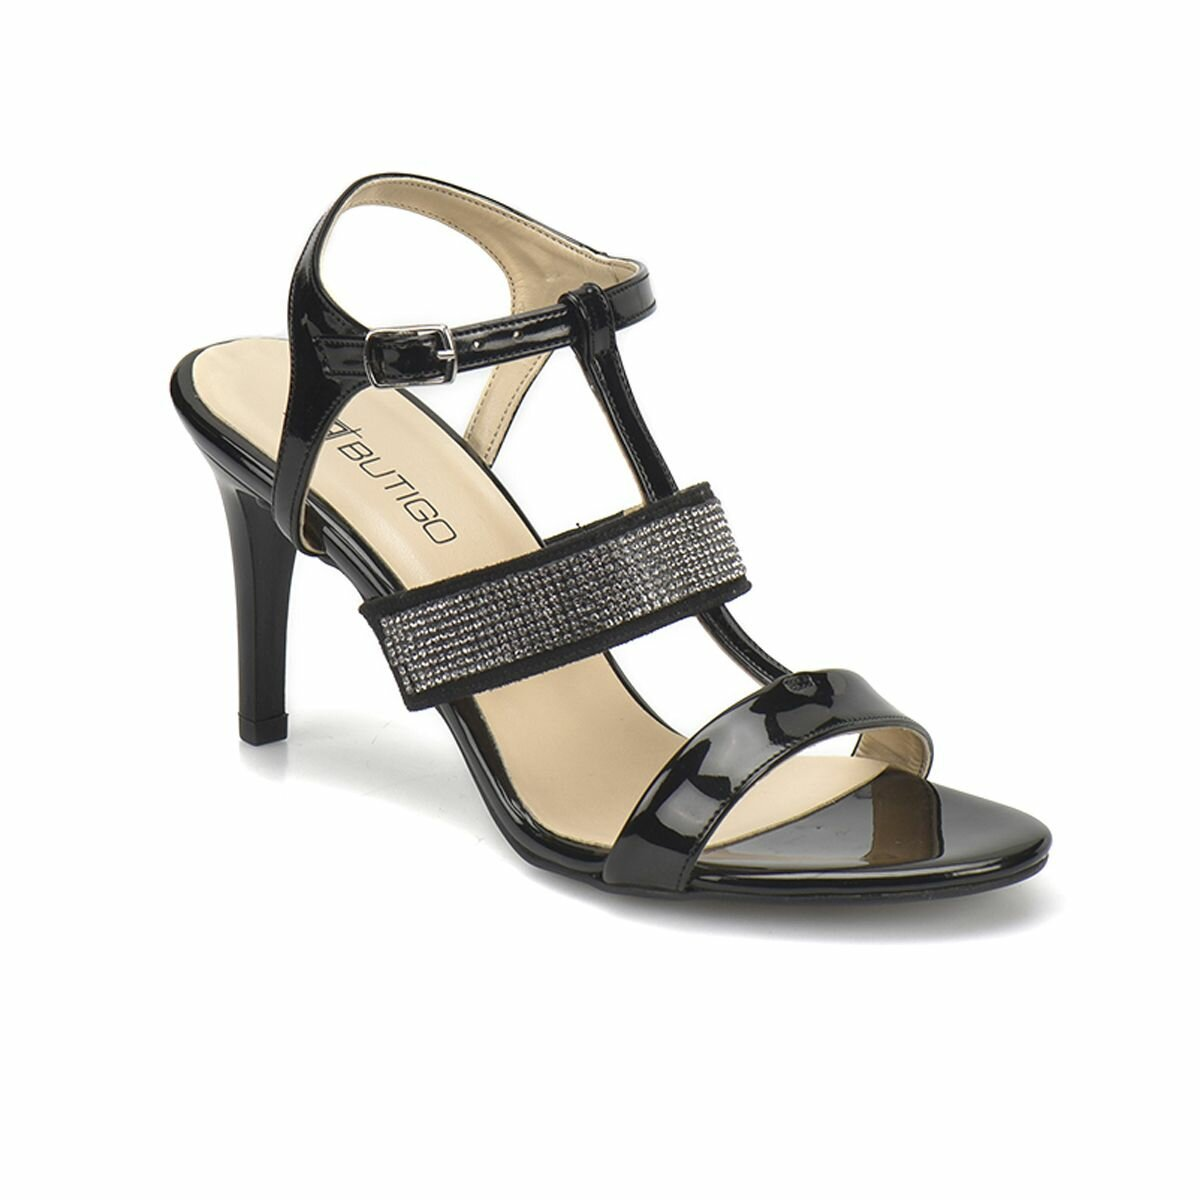 FLO 18S-095 Black Women Shoes BUTIGO